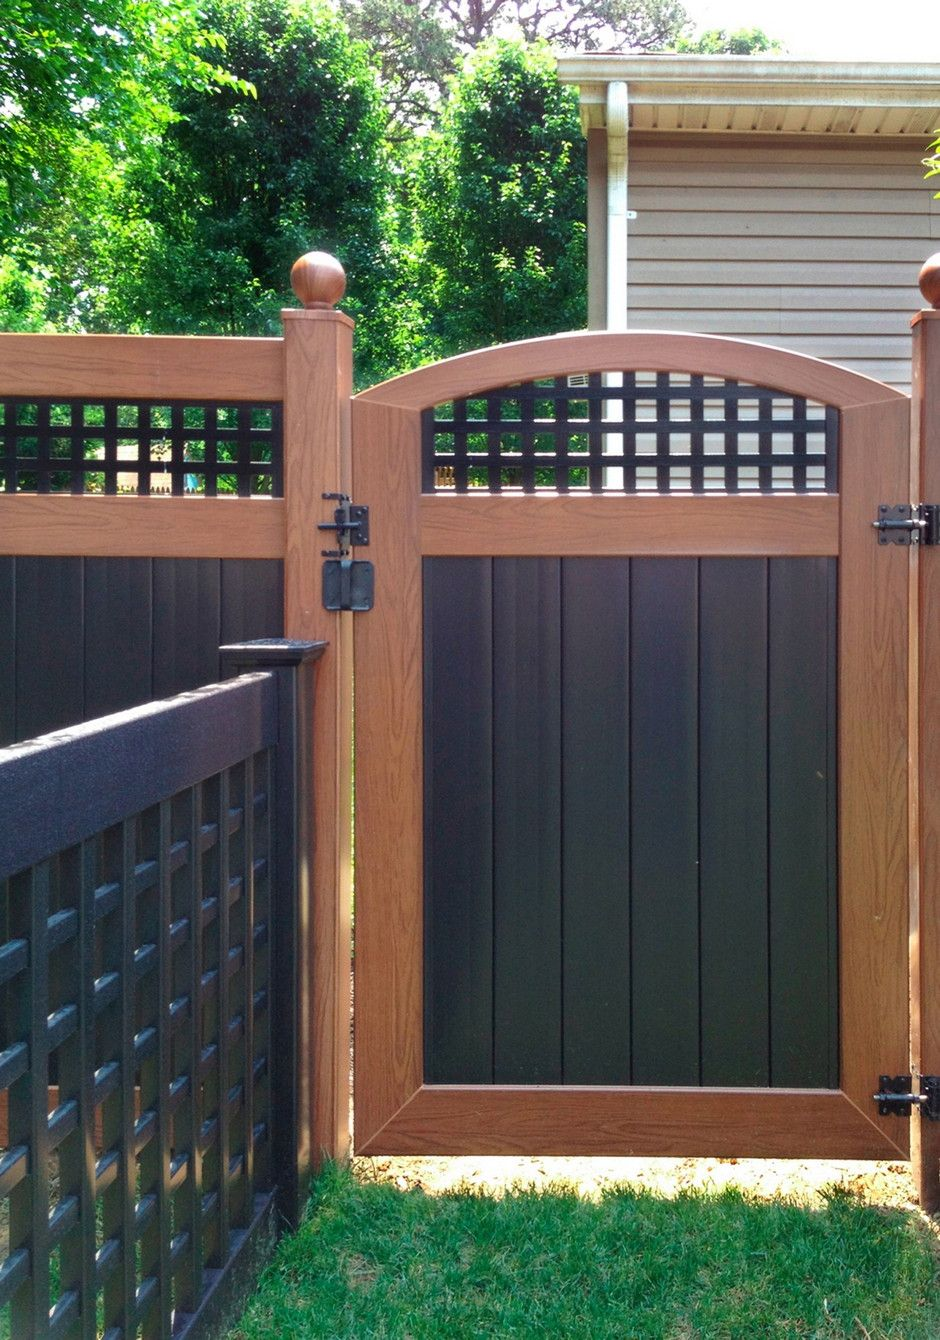 Decorative Fence Toppers 119 Pvc Vinyl Wood Grain And Black Fence Gate Ball Caps Side Of